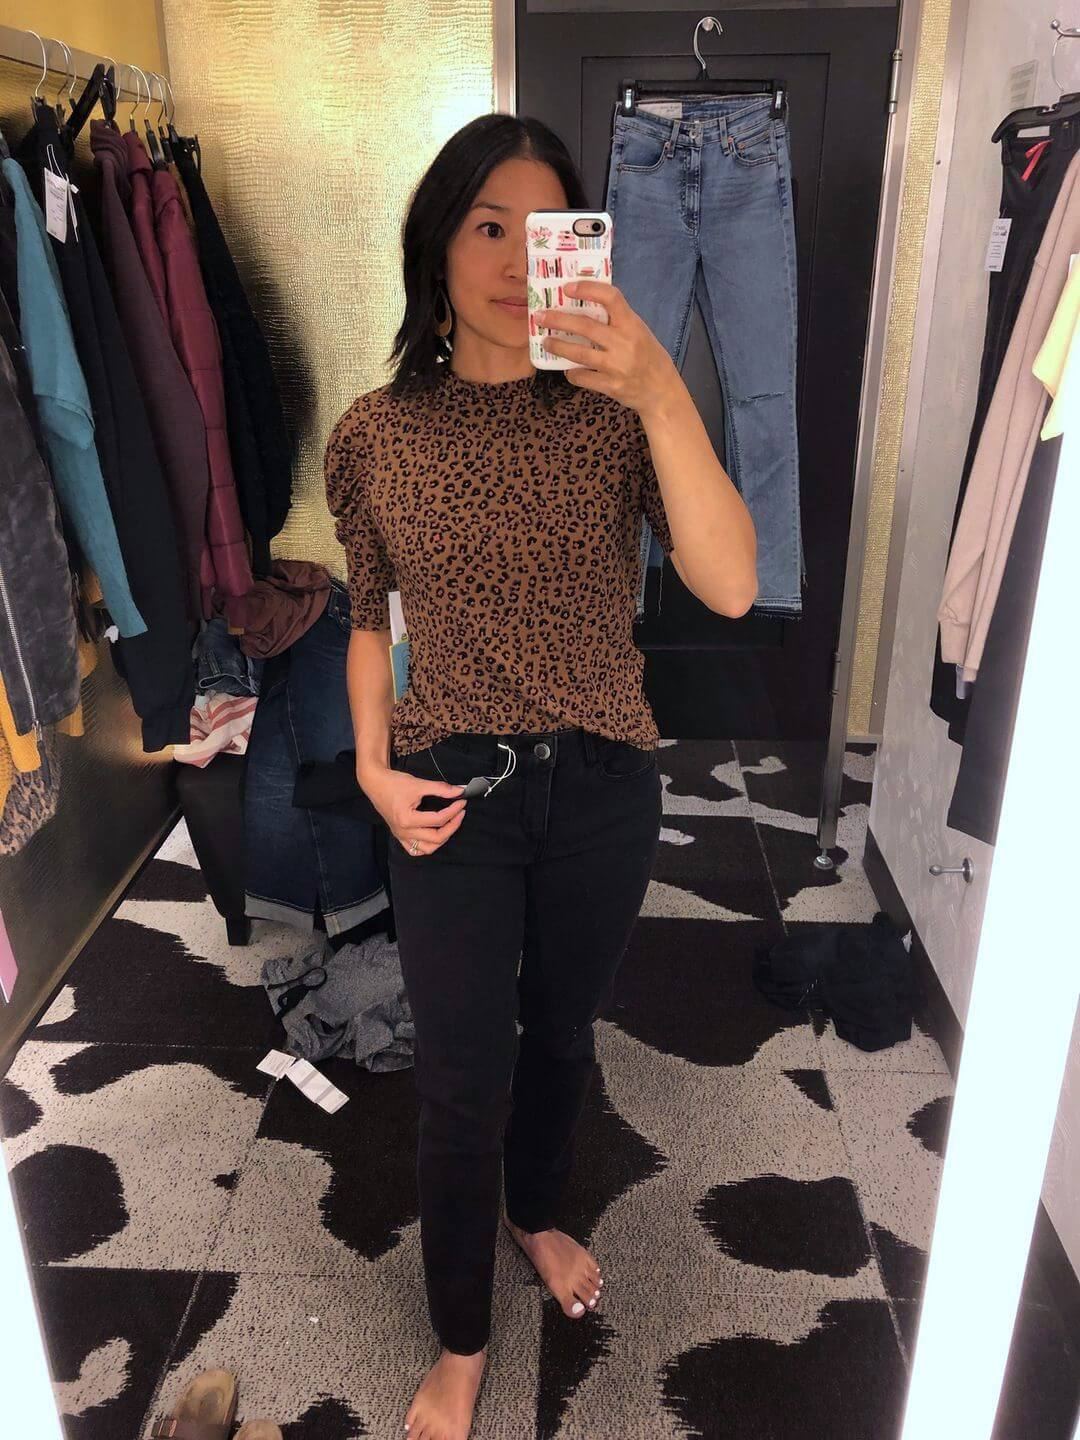 NSale Elevated Casual Outfit: leopard cheetah ruched sleeve top + black jeans